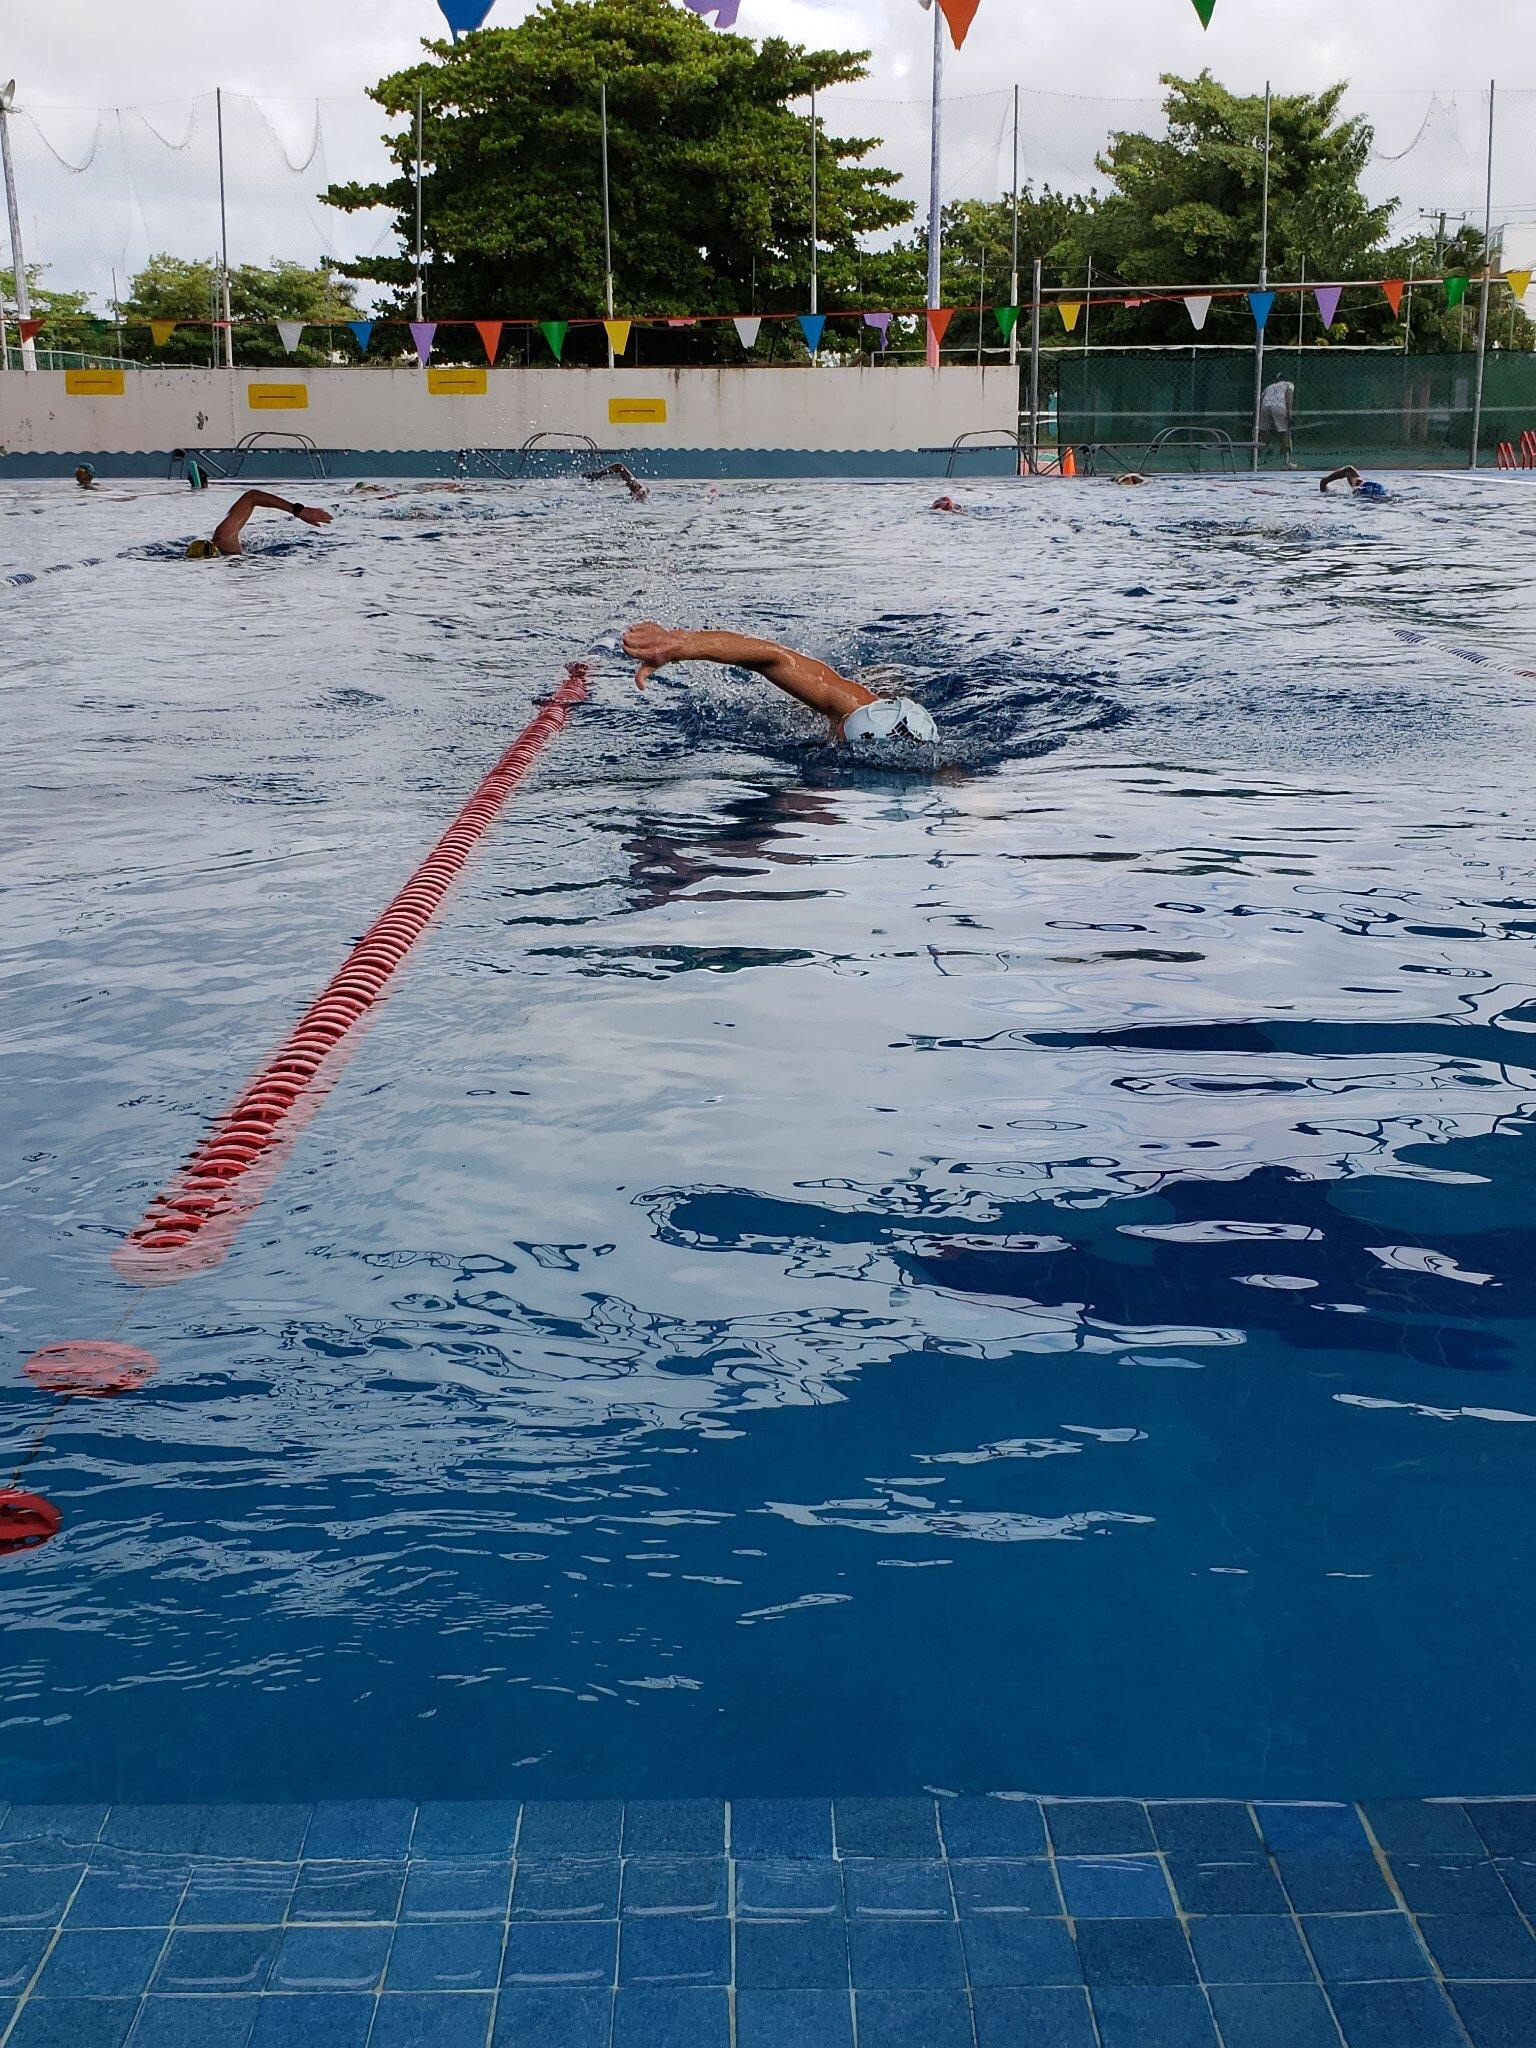 Pre-race swim in the Cozumel pool. Ran into some friends and got to check out a local swim meet going on in lanes 1+2. While I do normally like to do pre-race swimming in a pool, there wasn't another option this year as the days leading up to the race had very rough seas.